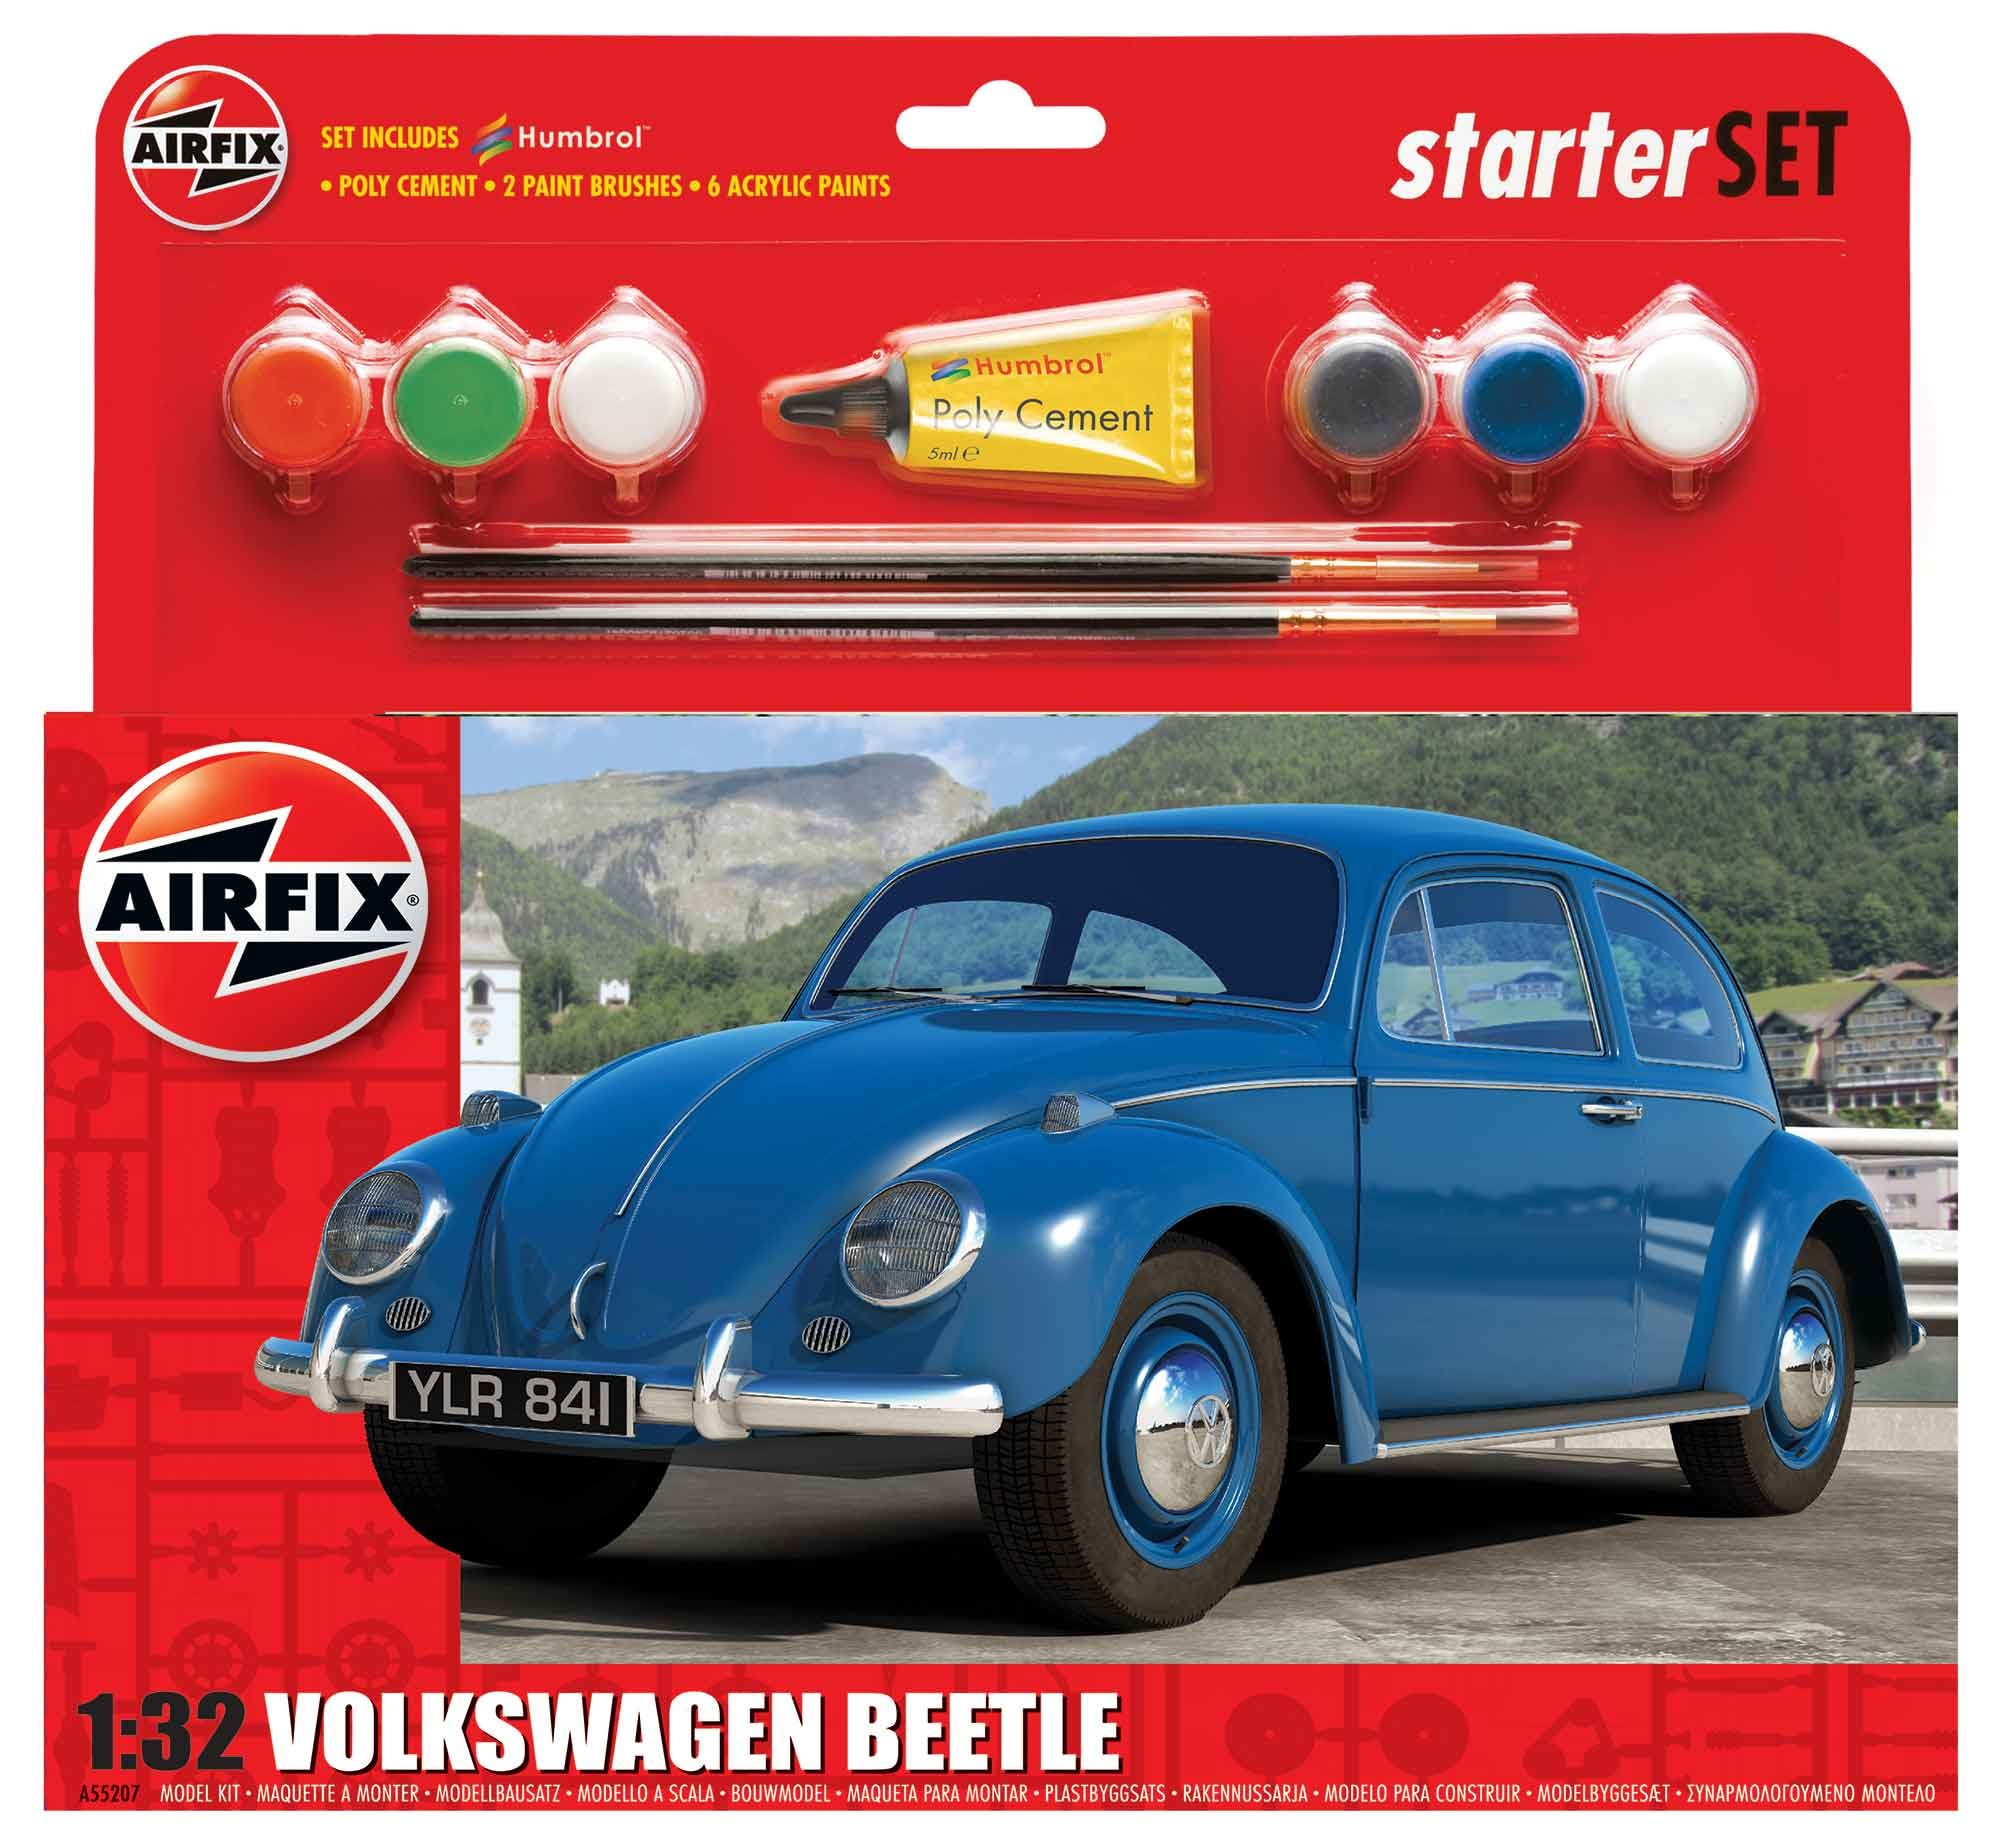 Airfix Volkswagen Beetle Gift Set 1:32nd Scale.